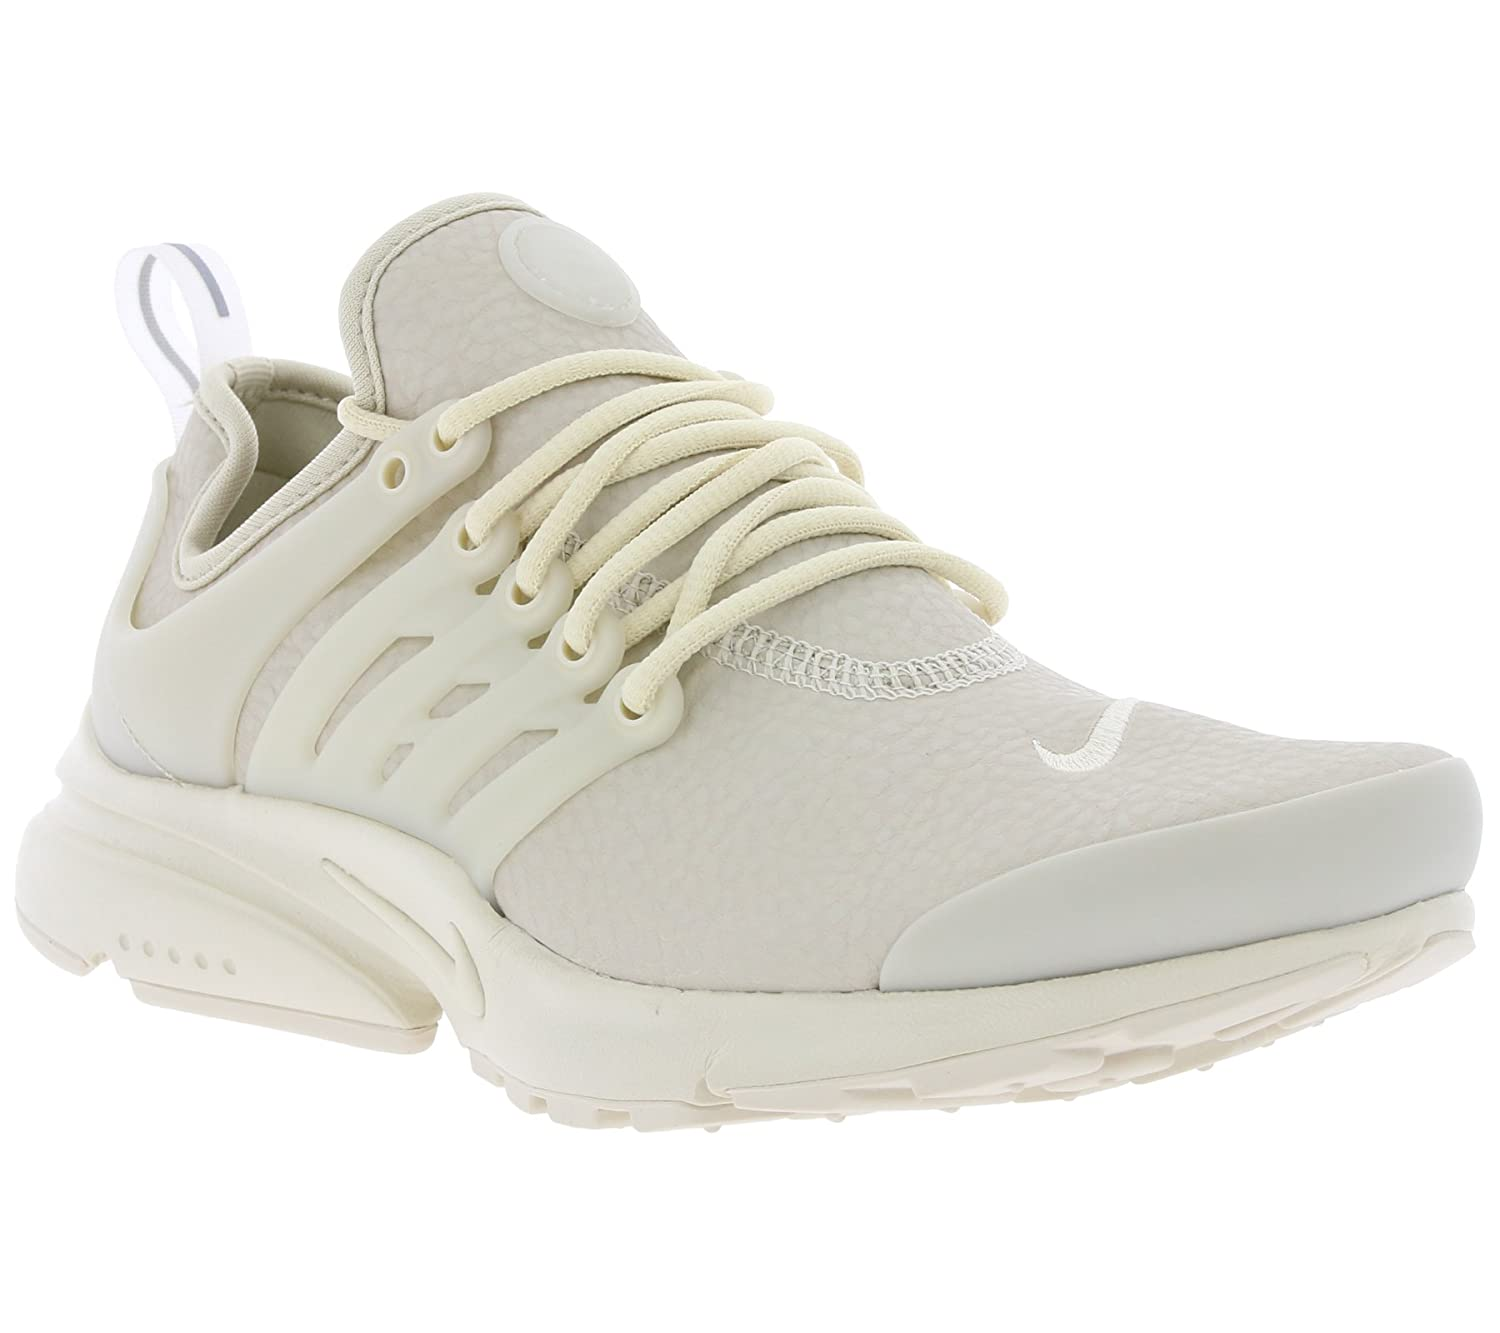 Nike Air Presto Premium WMNS 878071 100 in 2019 | Nike shoes